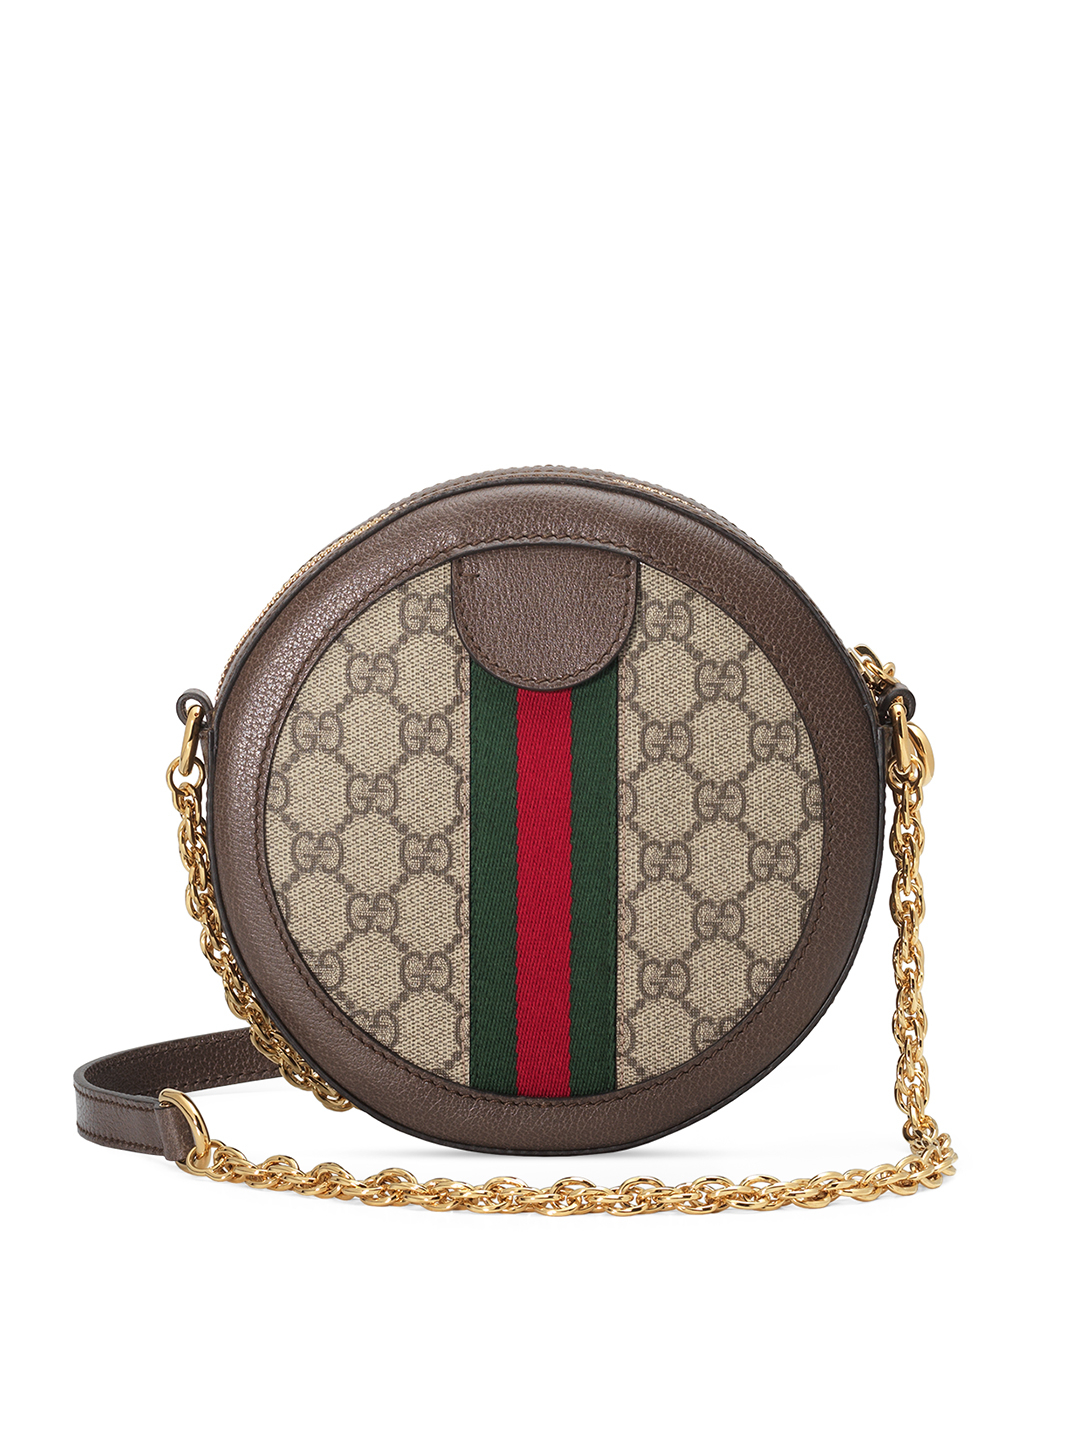 GUCCI Ophidia GG Supreme Circle Bag Women's Beige